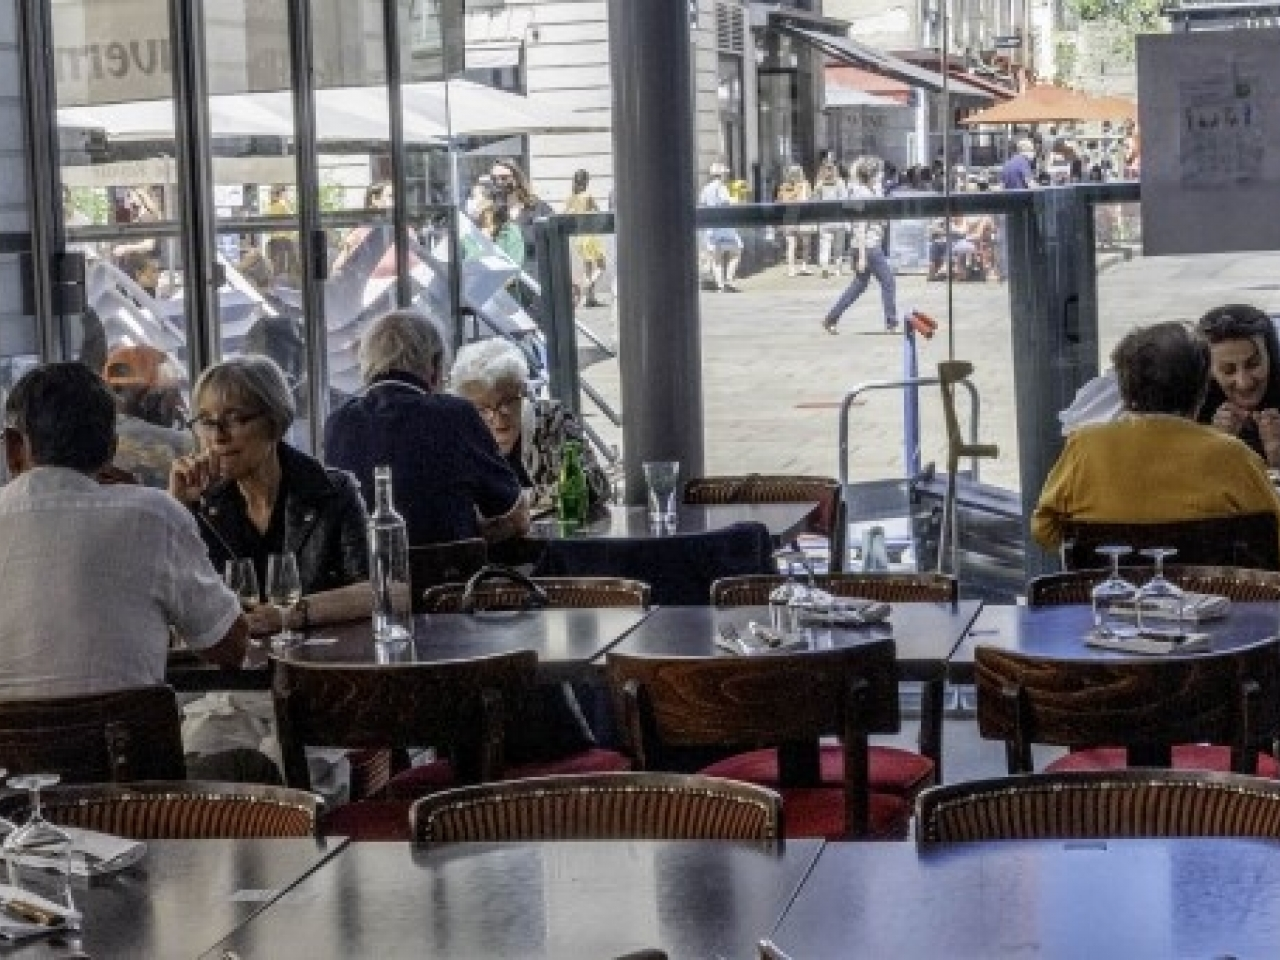 Diners enjoy their meals at a restaurant in Nantes as France tries to emerge from the Covid pandemic. Photo: AFP